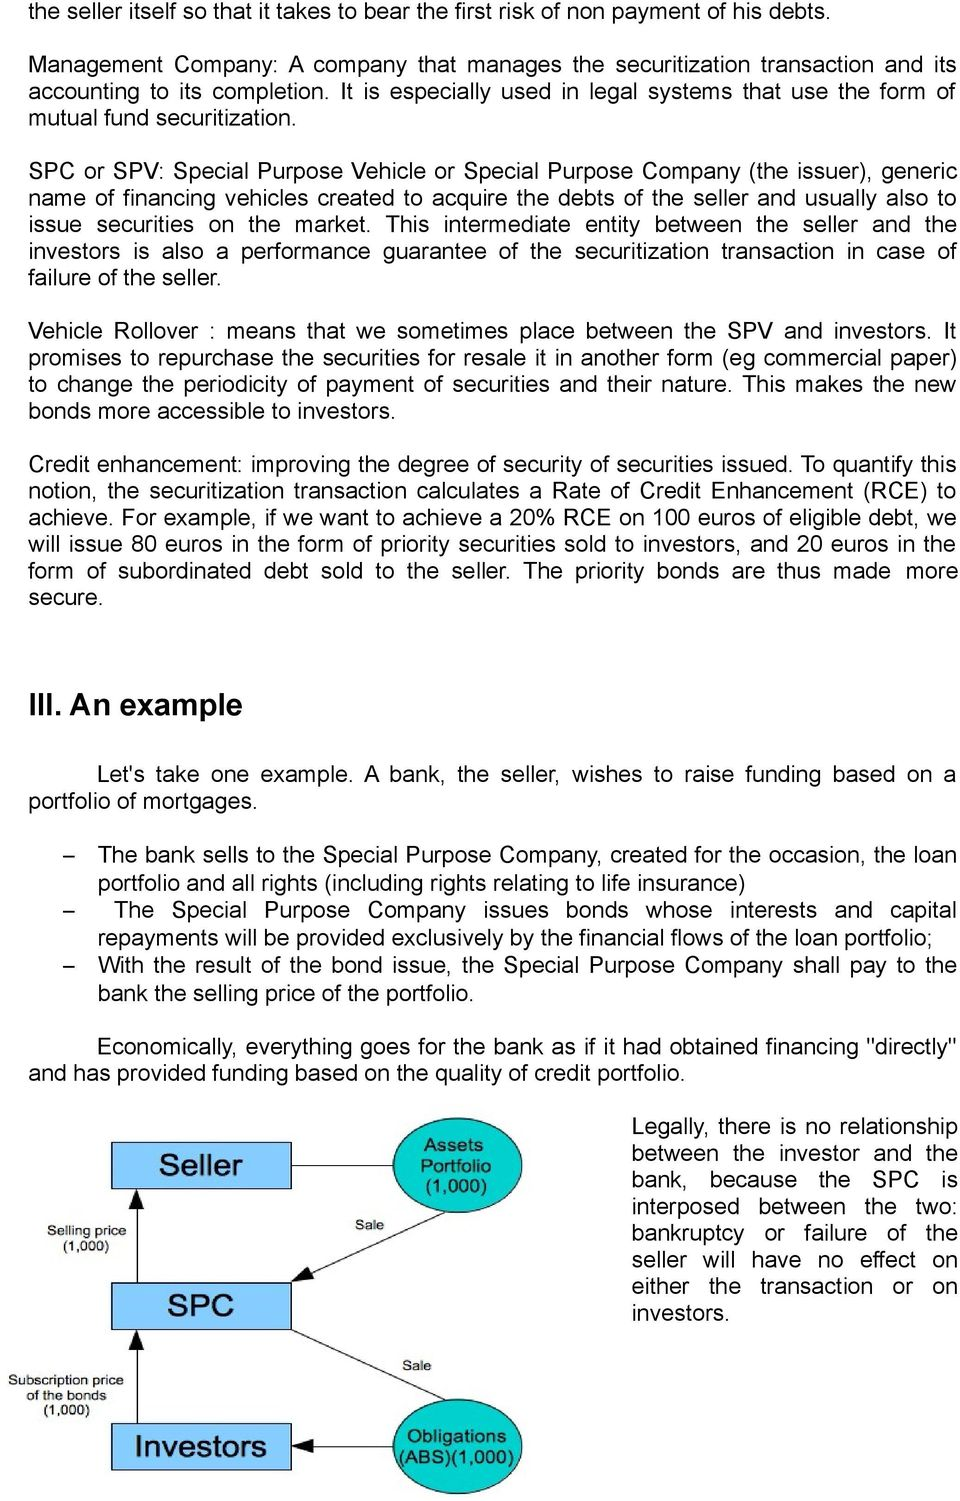 SPC or SPV: Special Purpose Vehicle or Special Purpose Company (the issuer), generic name of financing vehicles created to acquire the debts of the seller and usually also to issue securities on the